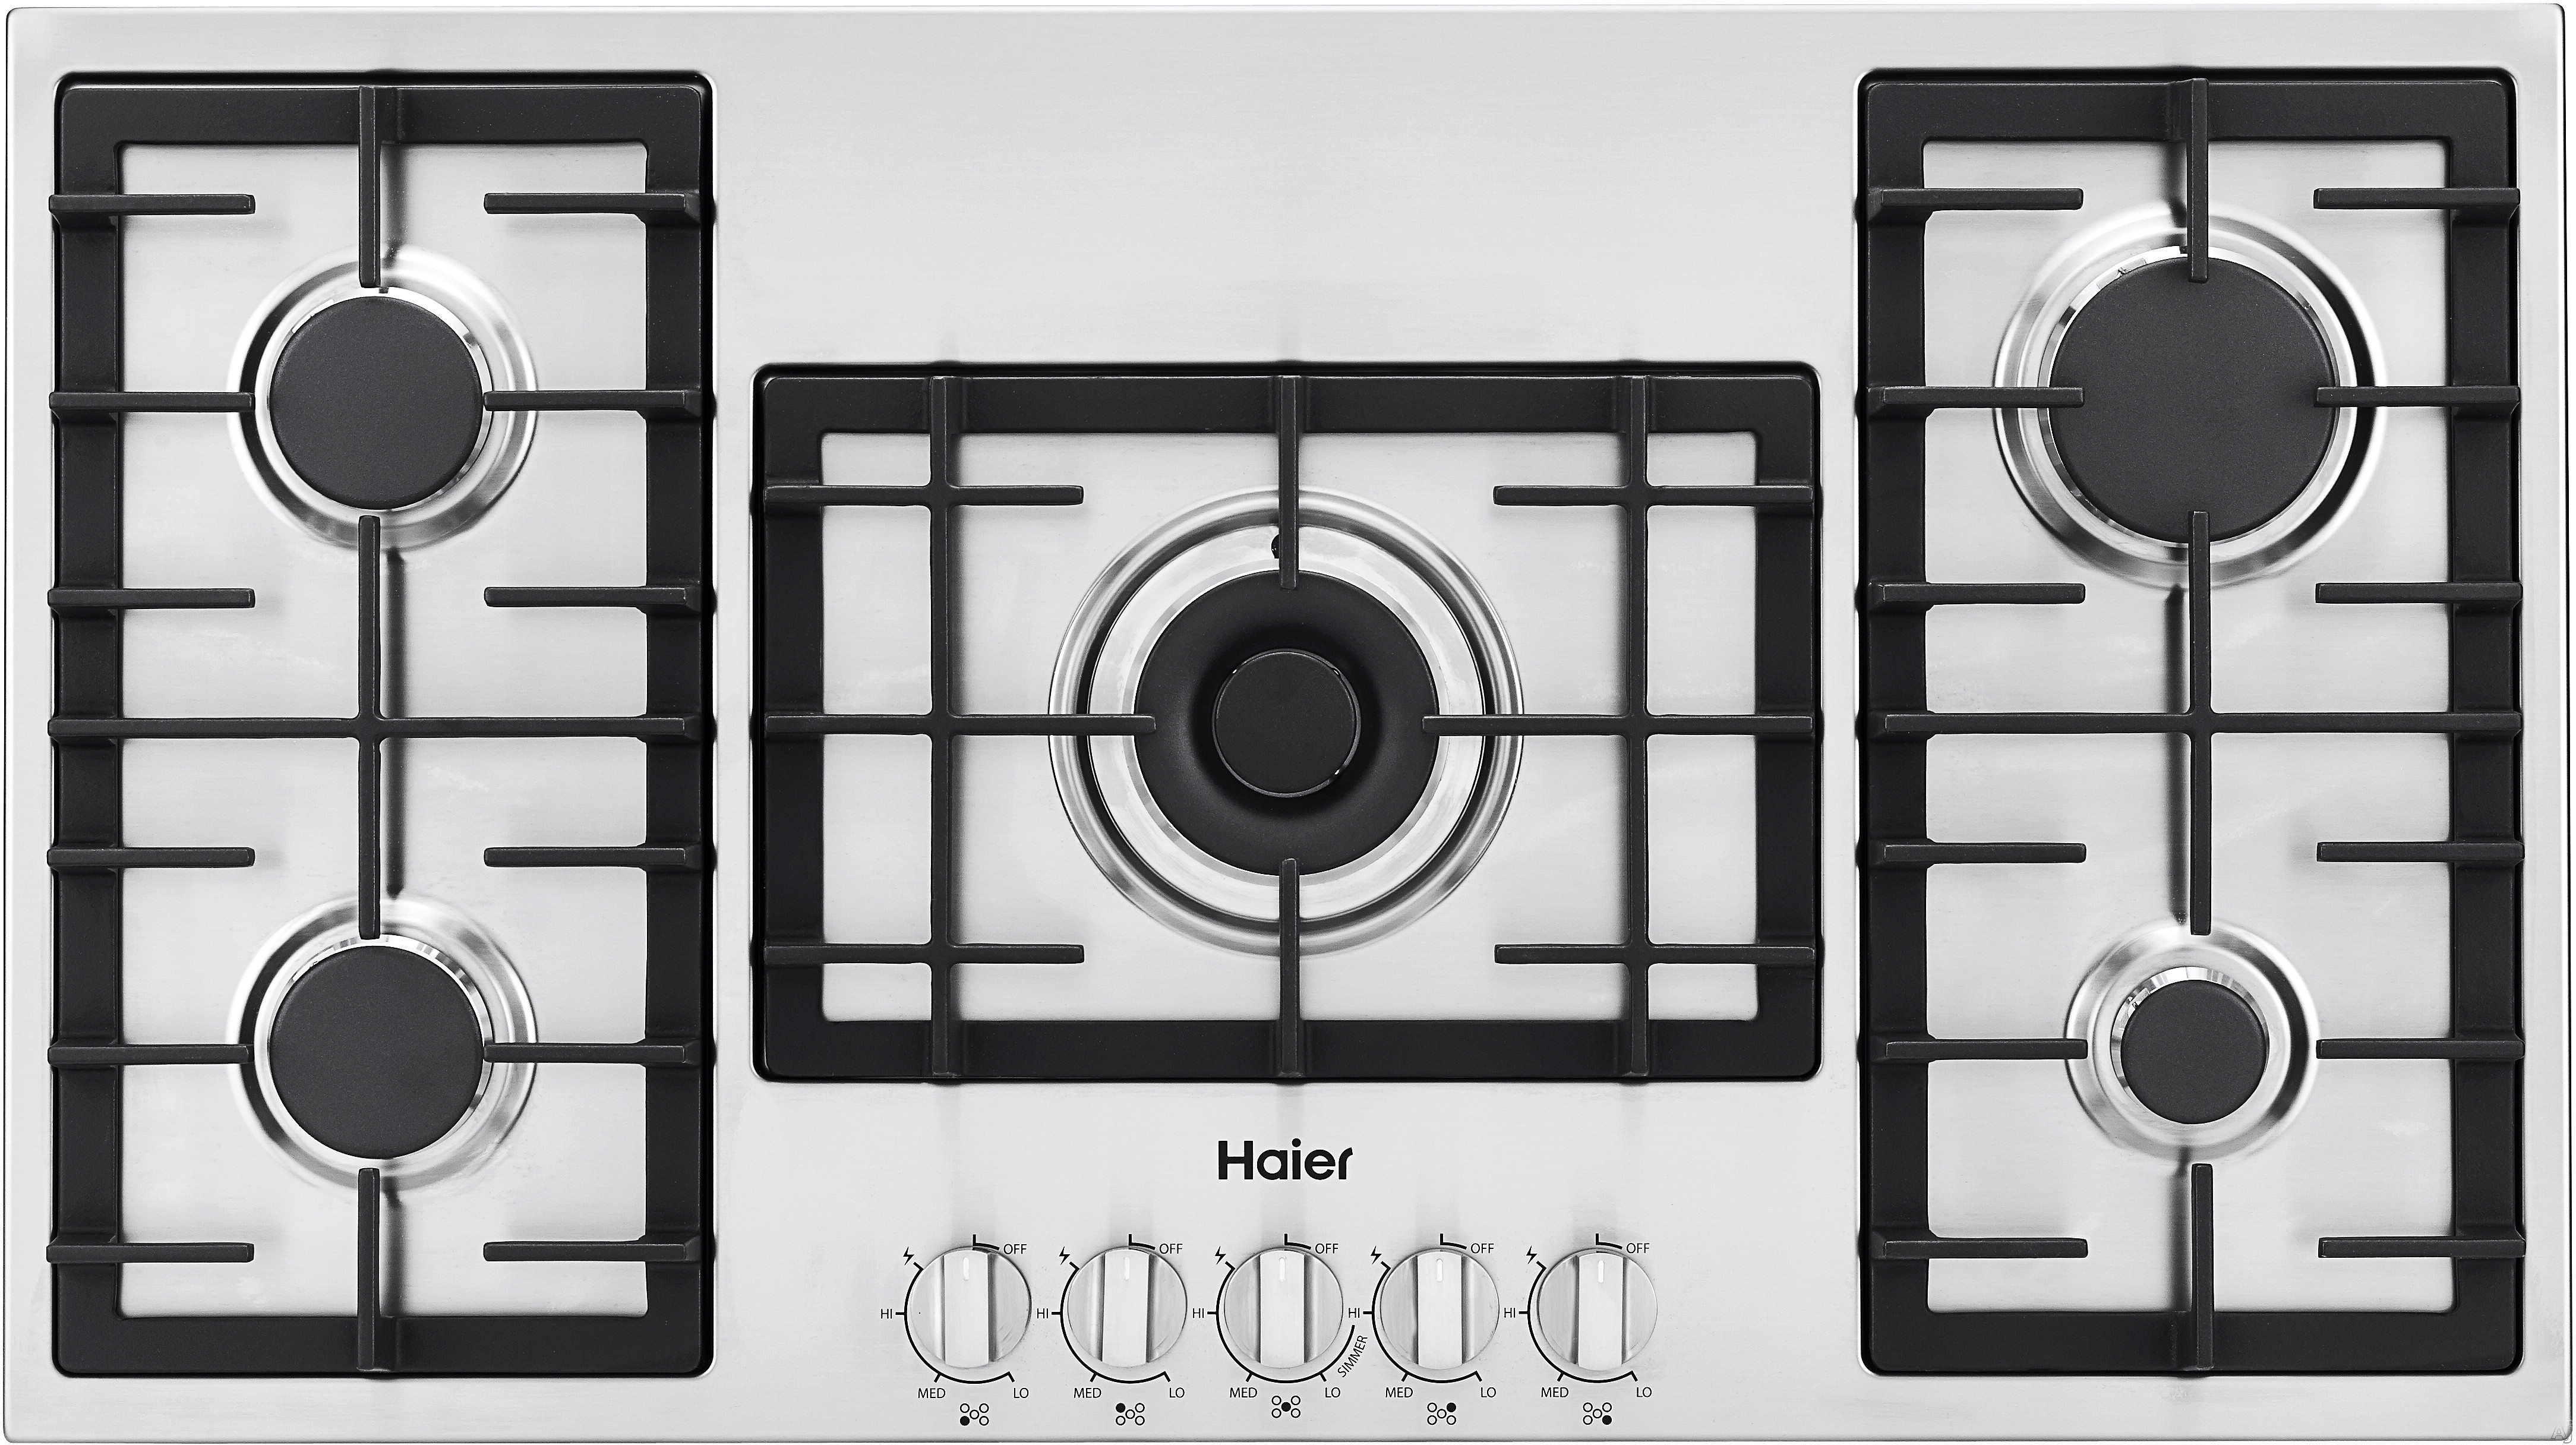 Haier HCC6430AGS 36 Inch Gas Cooktop with 5 Sealed Burners, Heavy Duty Cast Iron Grates, Electric Flame Ignition and Re-Ignition, LP Convertible and Heavy Duty Control Knobs